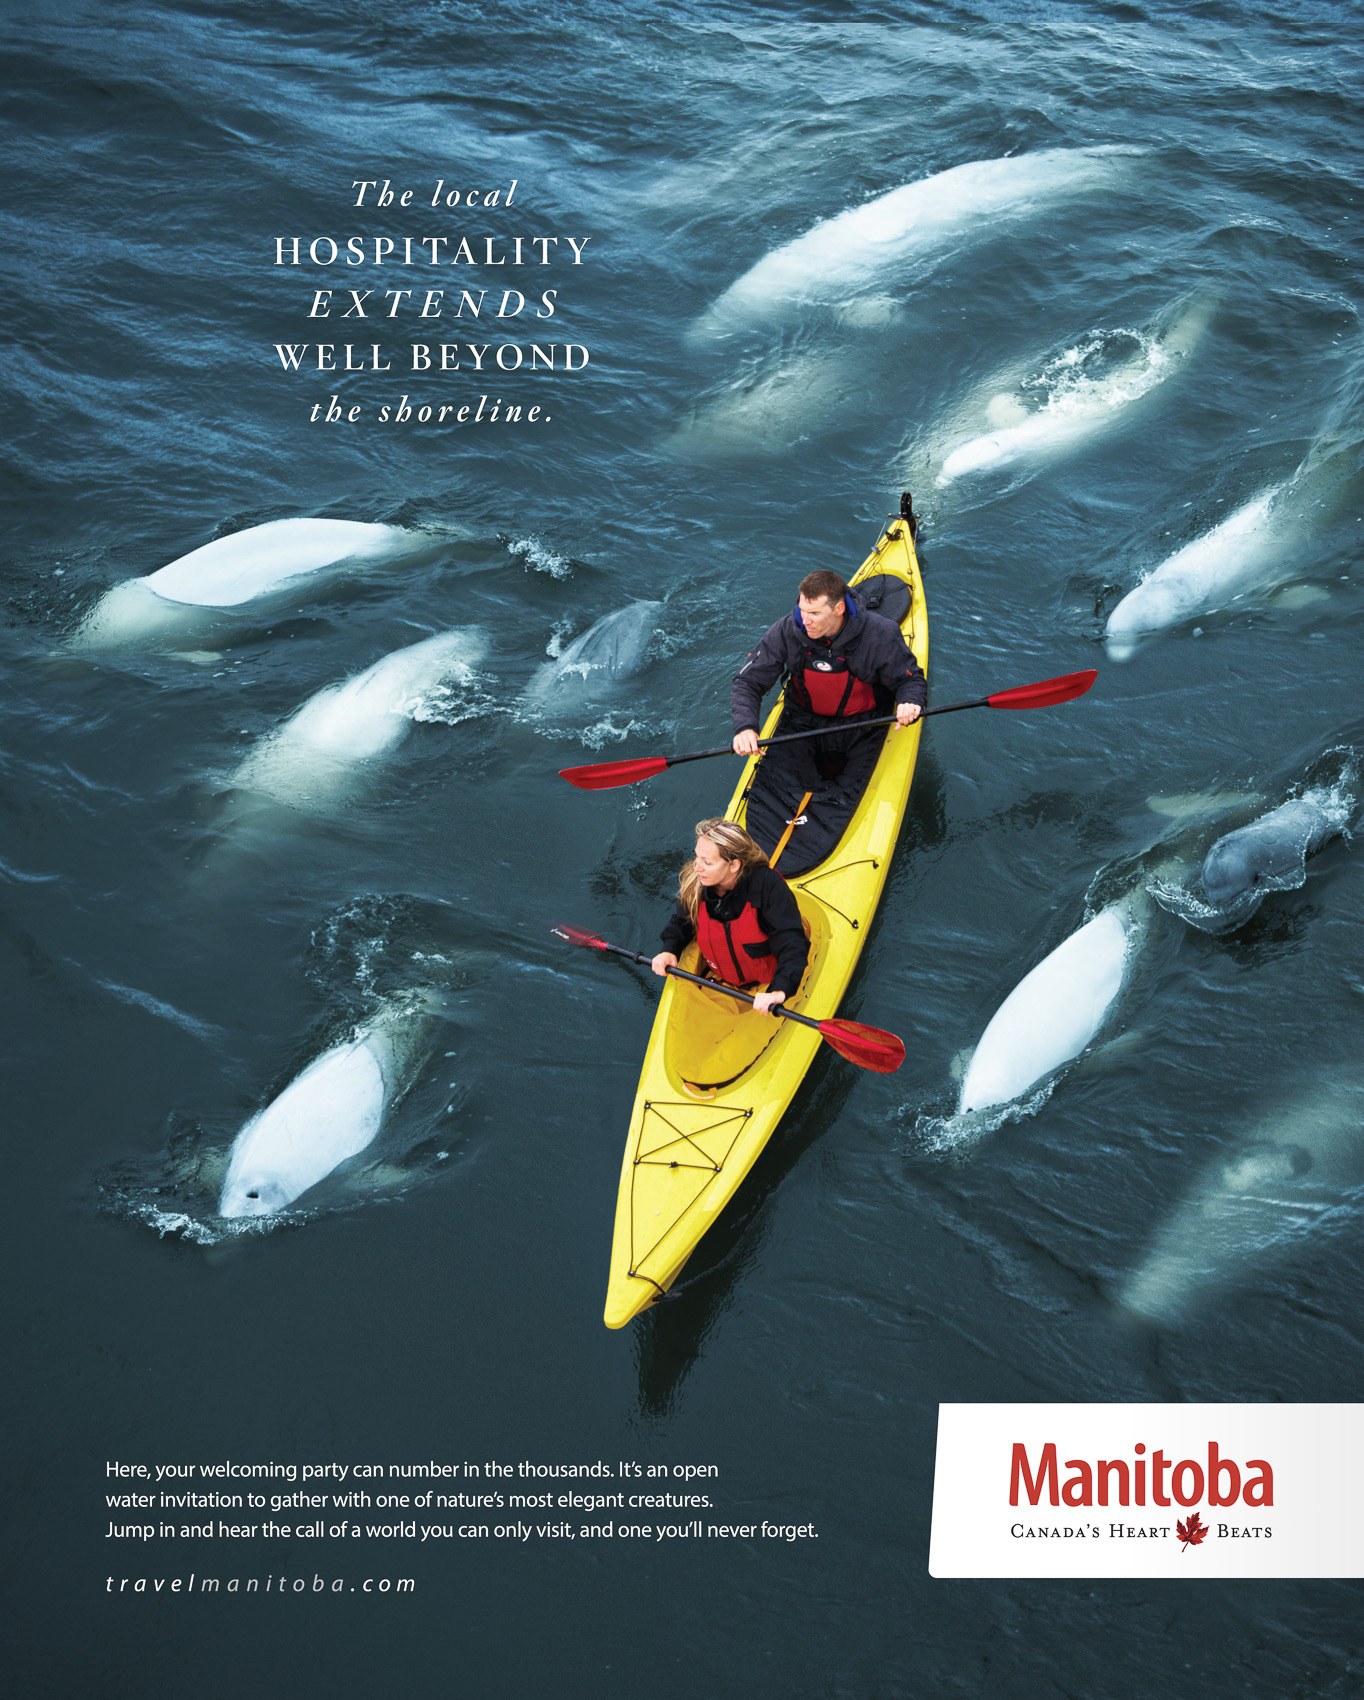 Travel Manitoba belugas.  Photography by Thomas Fricke, Winnipeg commercial photographer.  Concept by McKim.